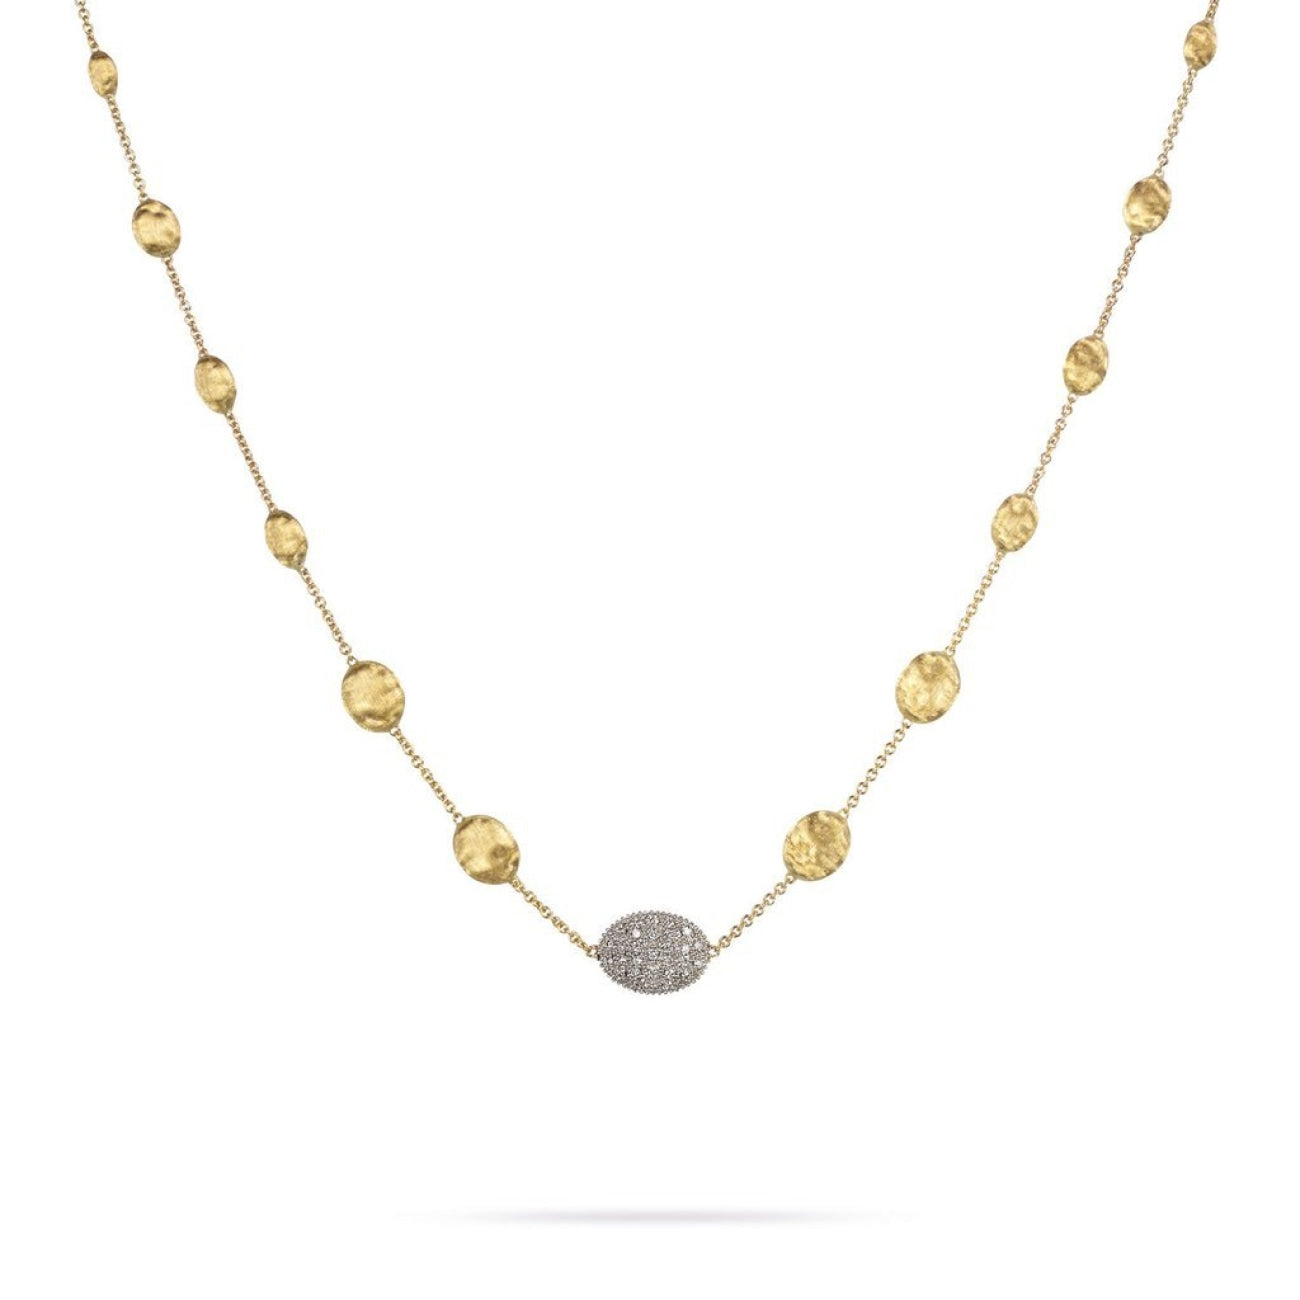 Marco Bicego Jewelry - 18K Yellow Gold & Diamond Pave Graduated Short Necklace | Manfredi Jewels